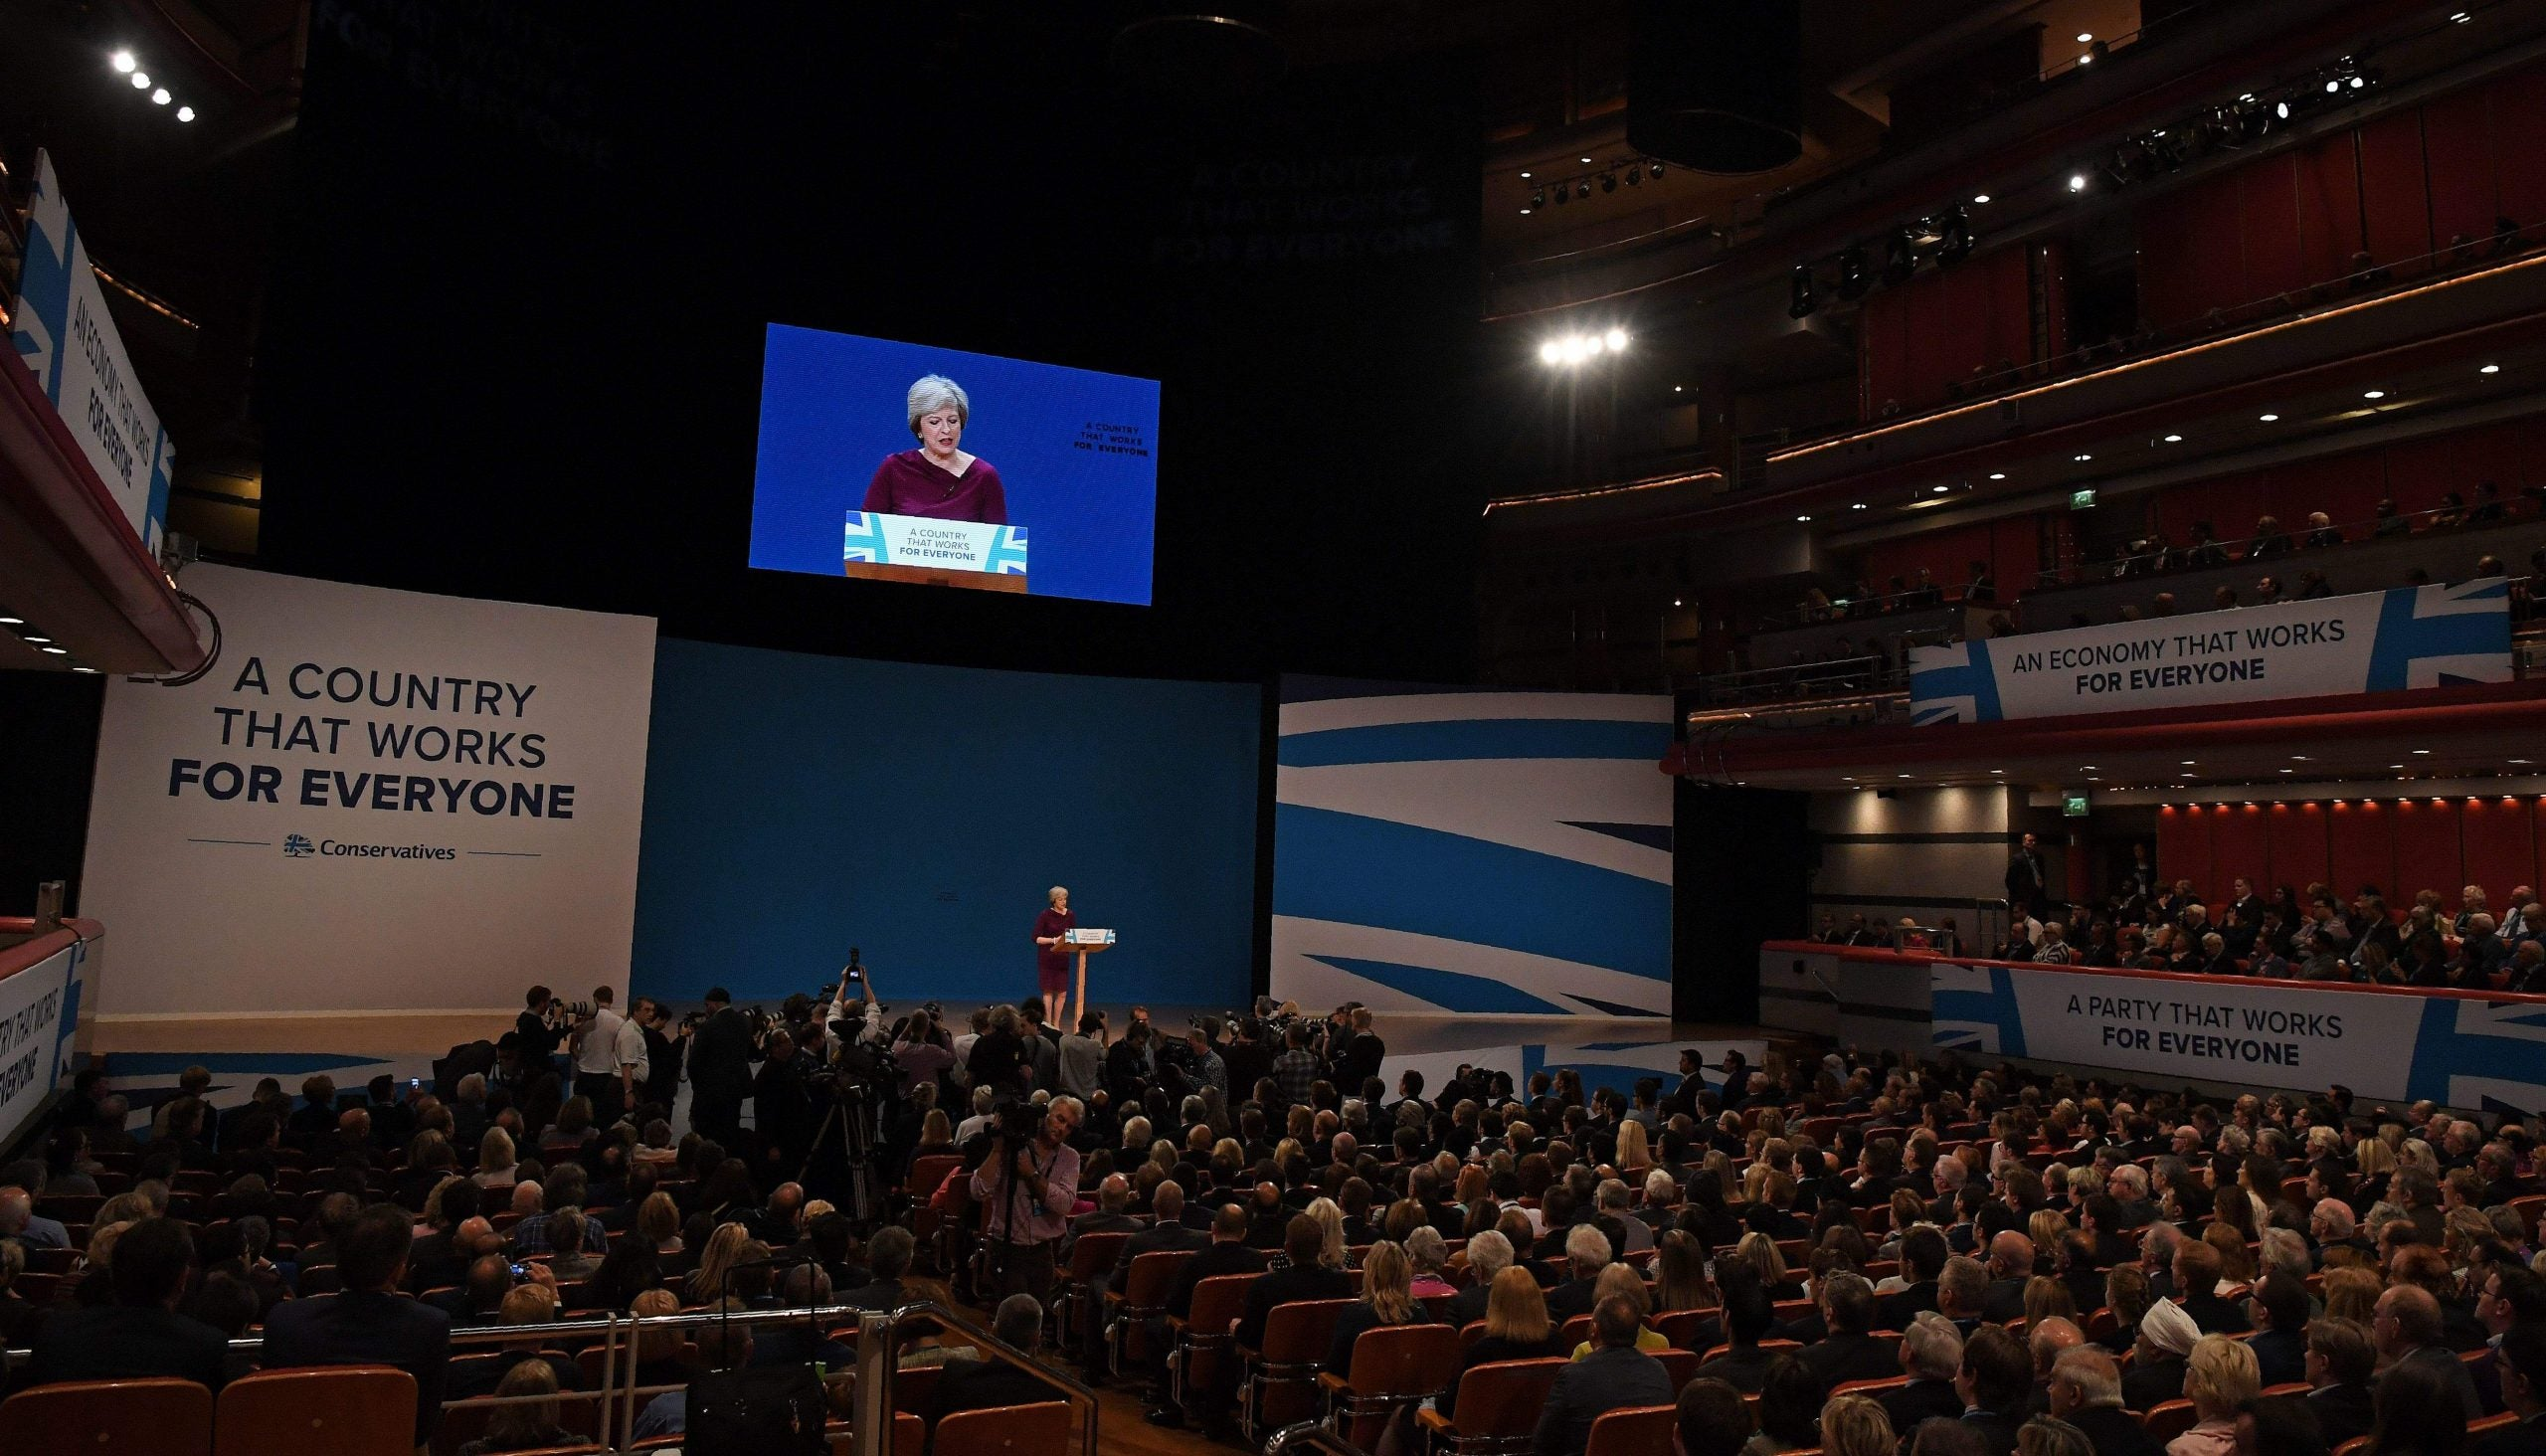 From sovereignty to cities: what we learned at Tory party conference